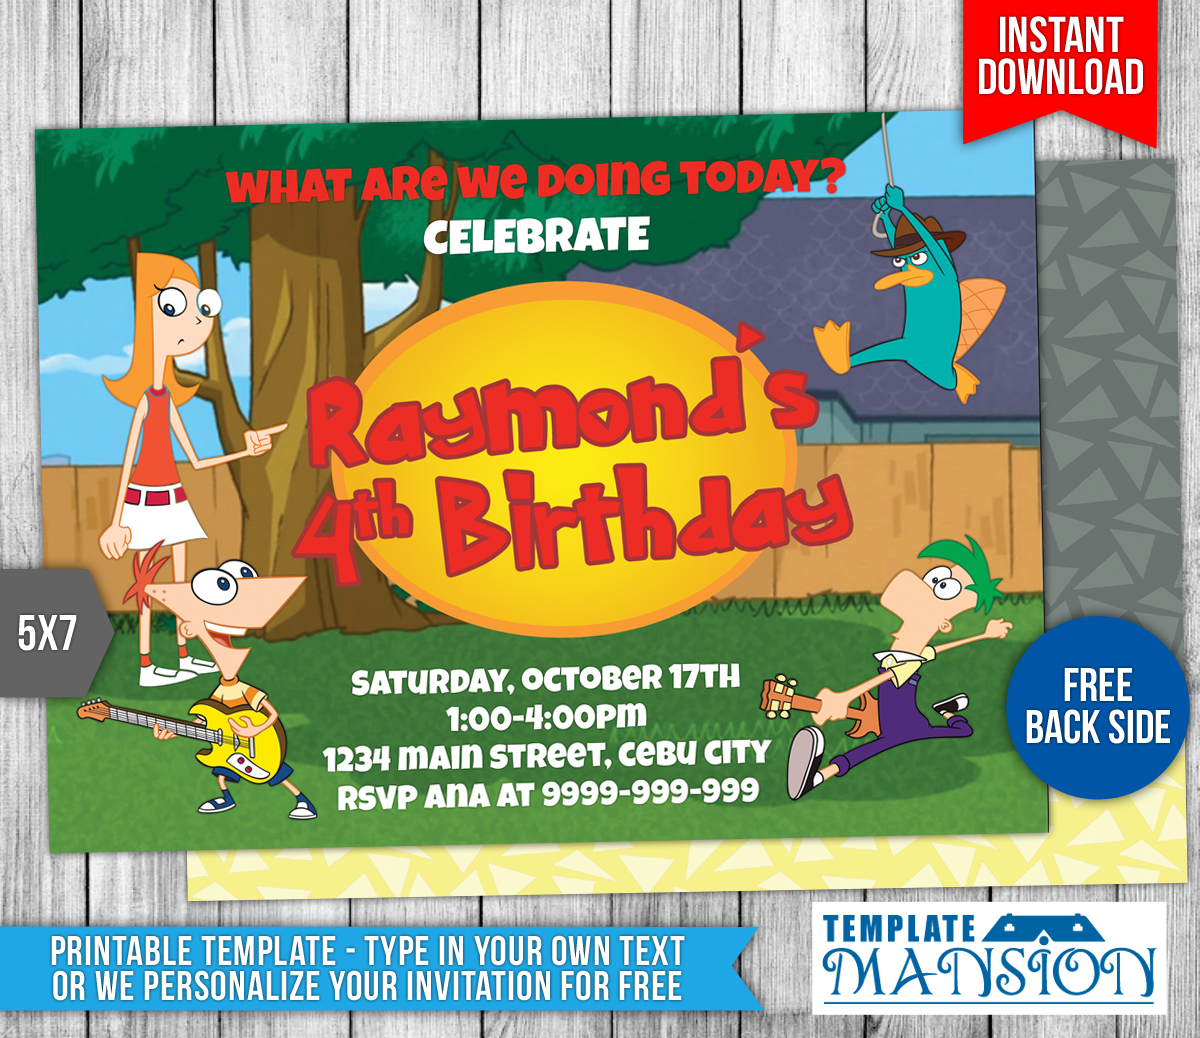 Phineas and Ferb Birthday Invitation Template 1 by – Phineas and Ferb Birthday Card